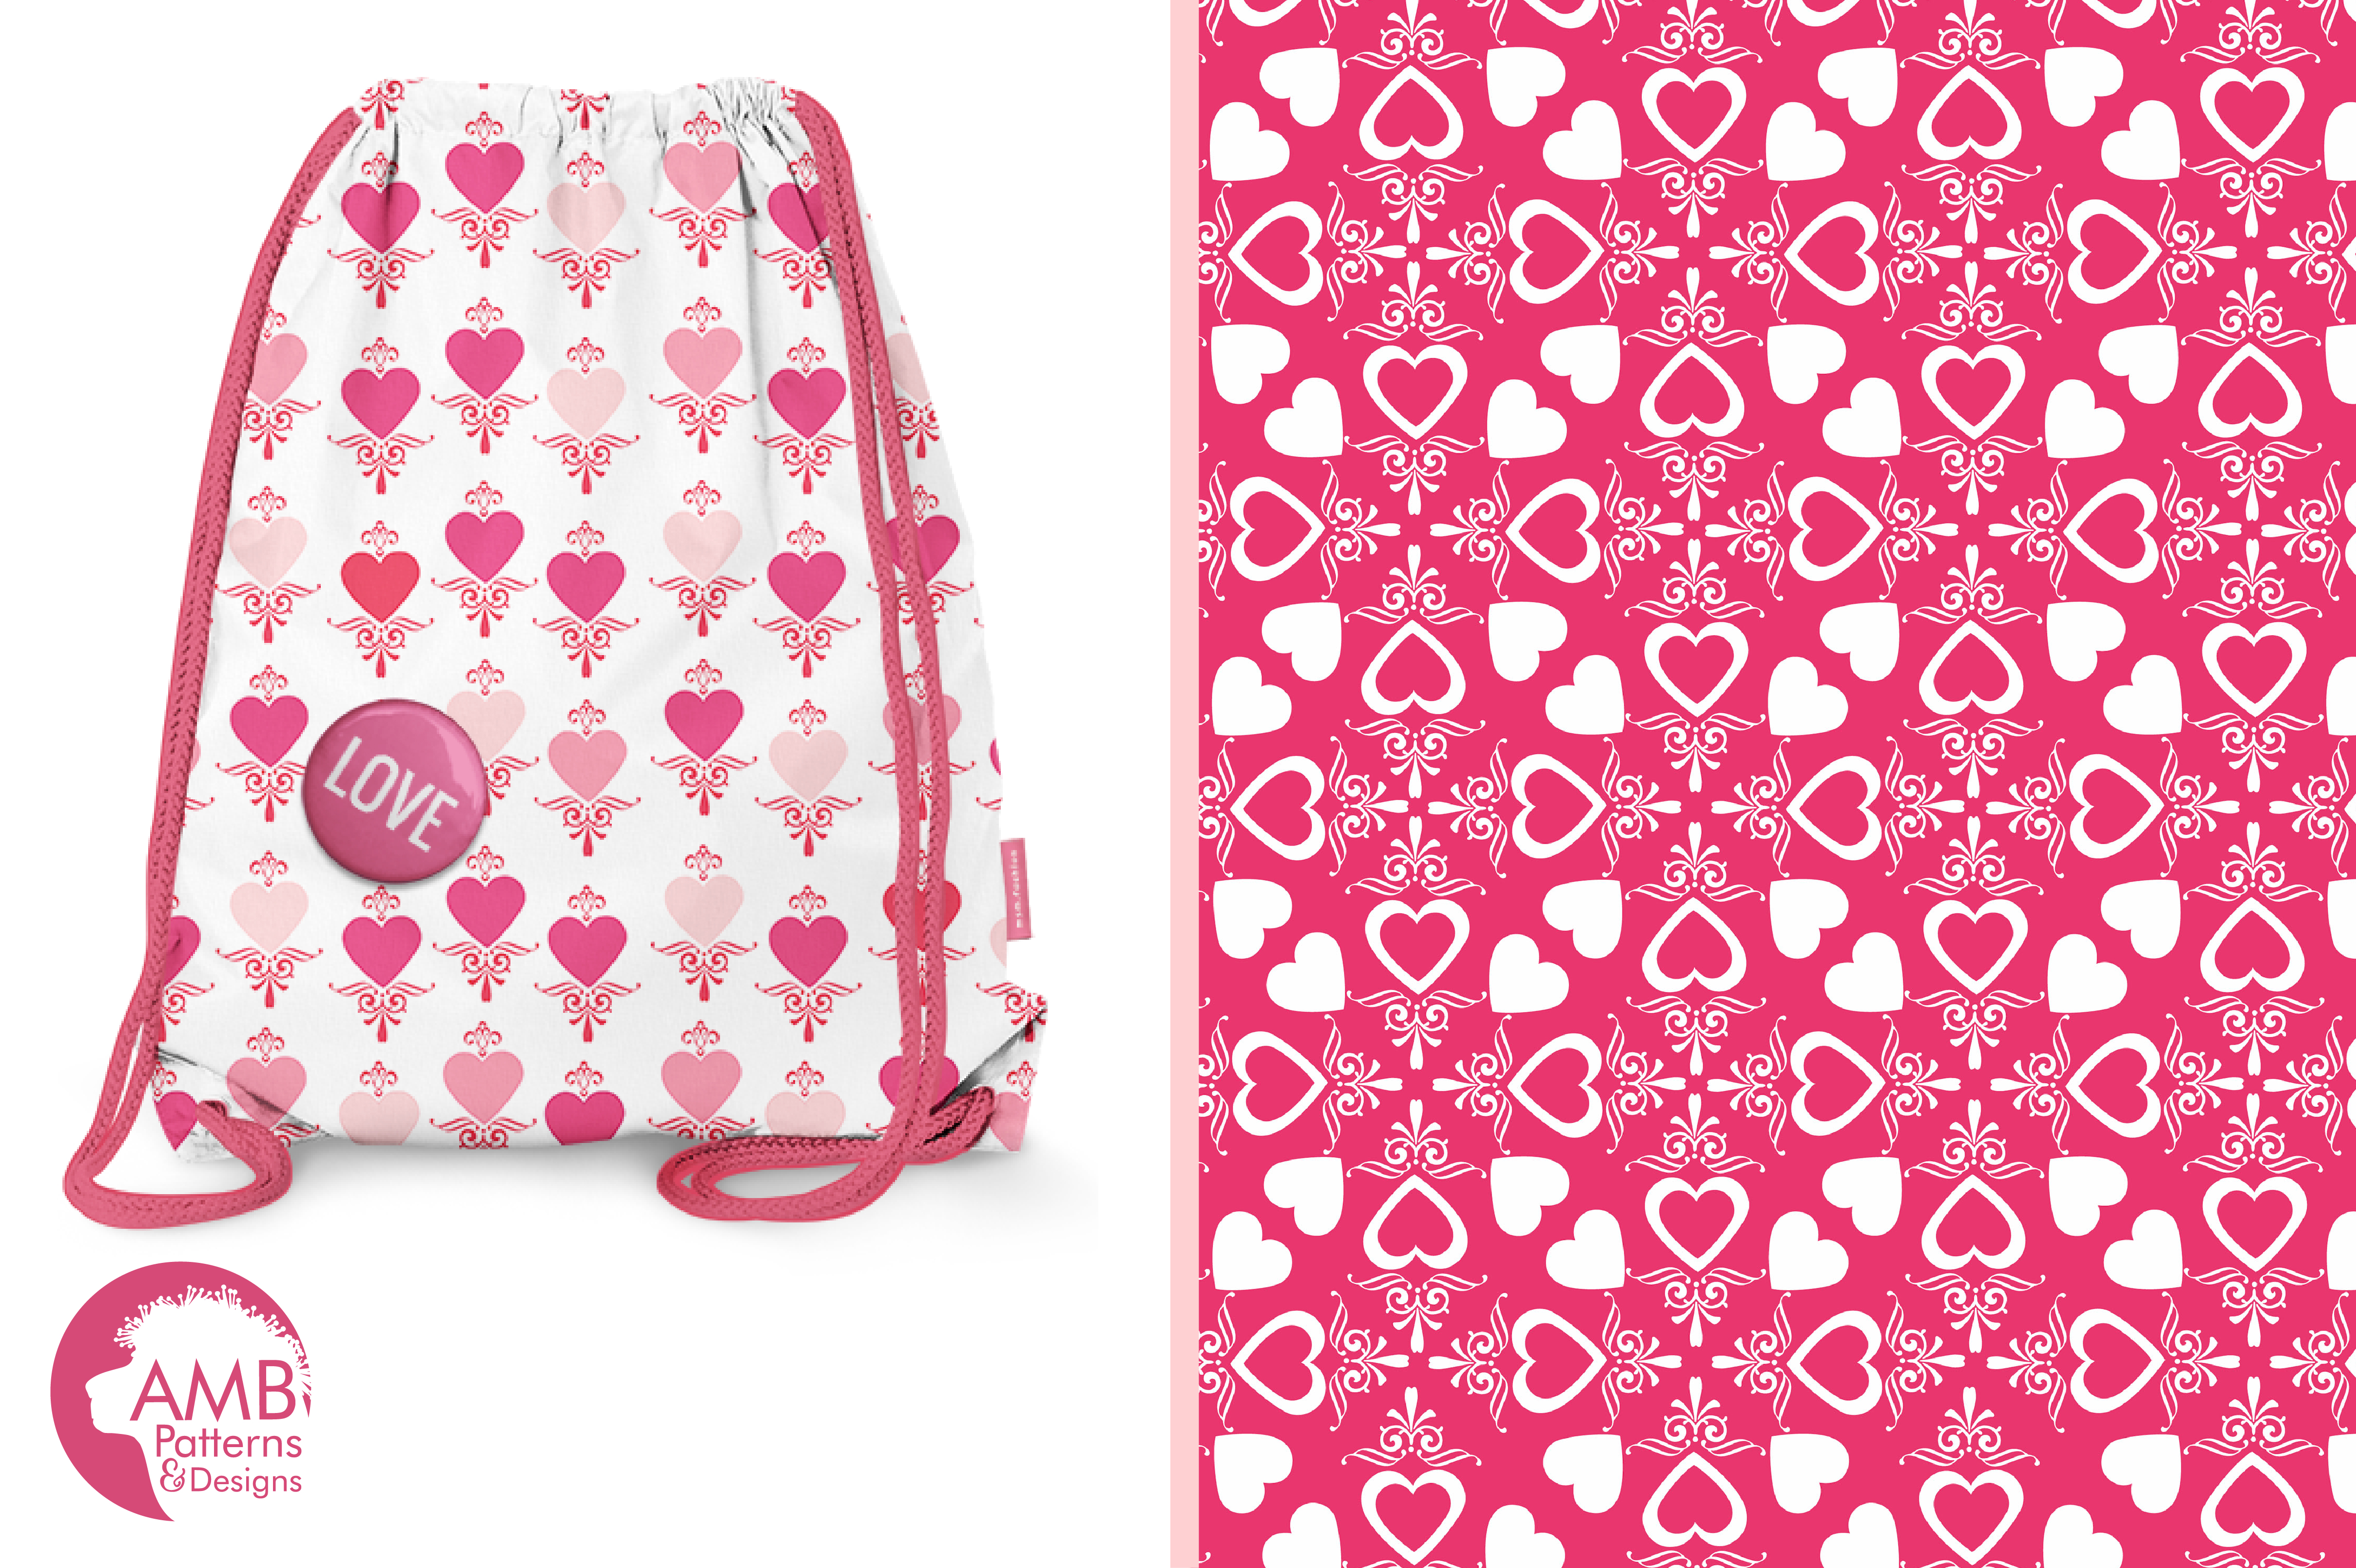 Be my Valentine pattern, papers, surface design AMB-1166 example image 3